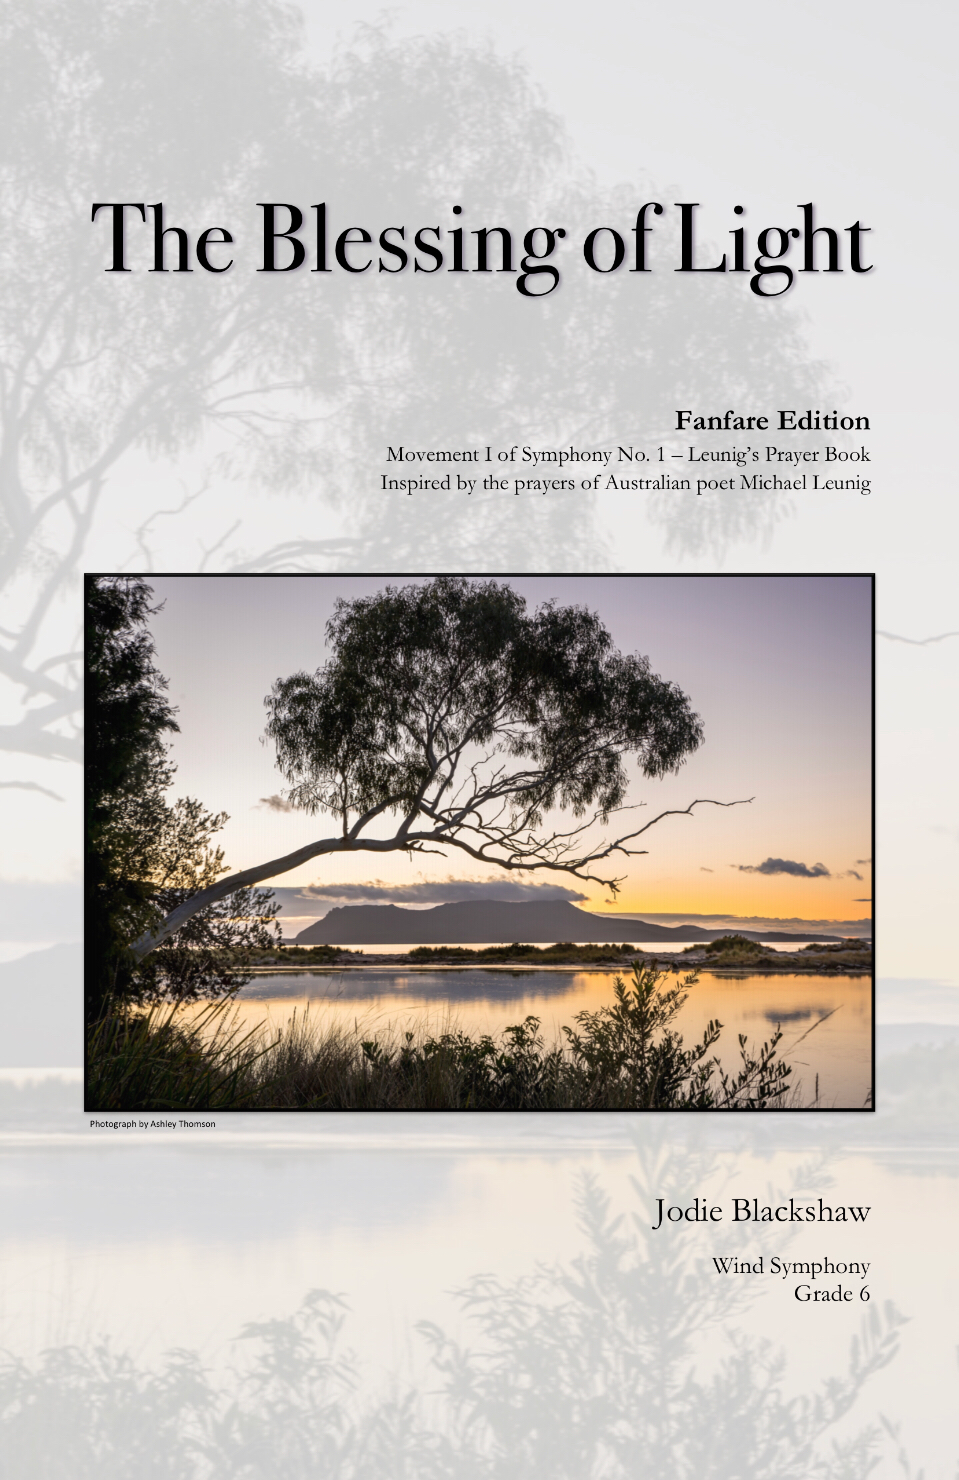 The Blessing Of Light (Score Only) by Jodie Blackshaw